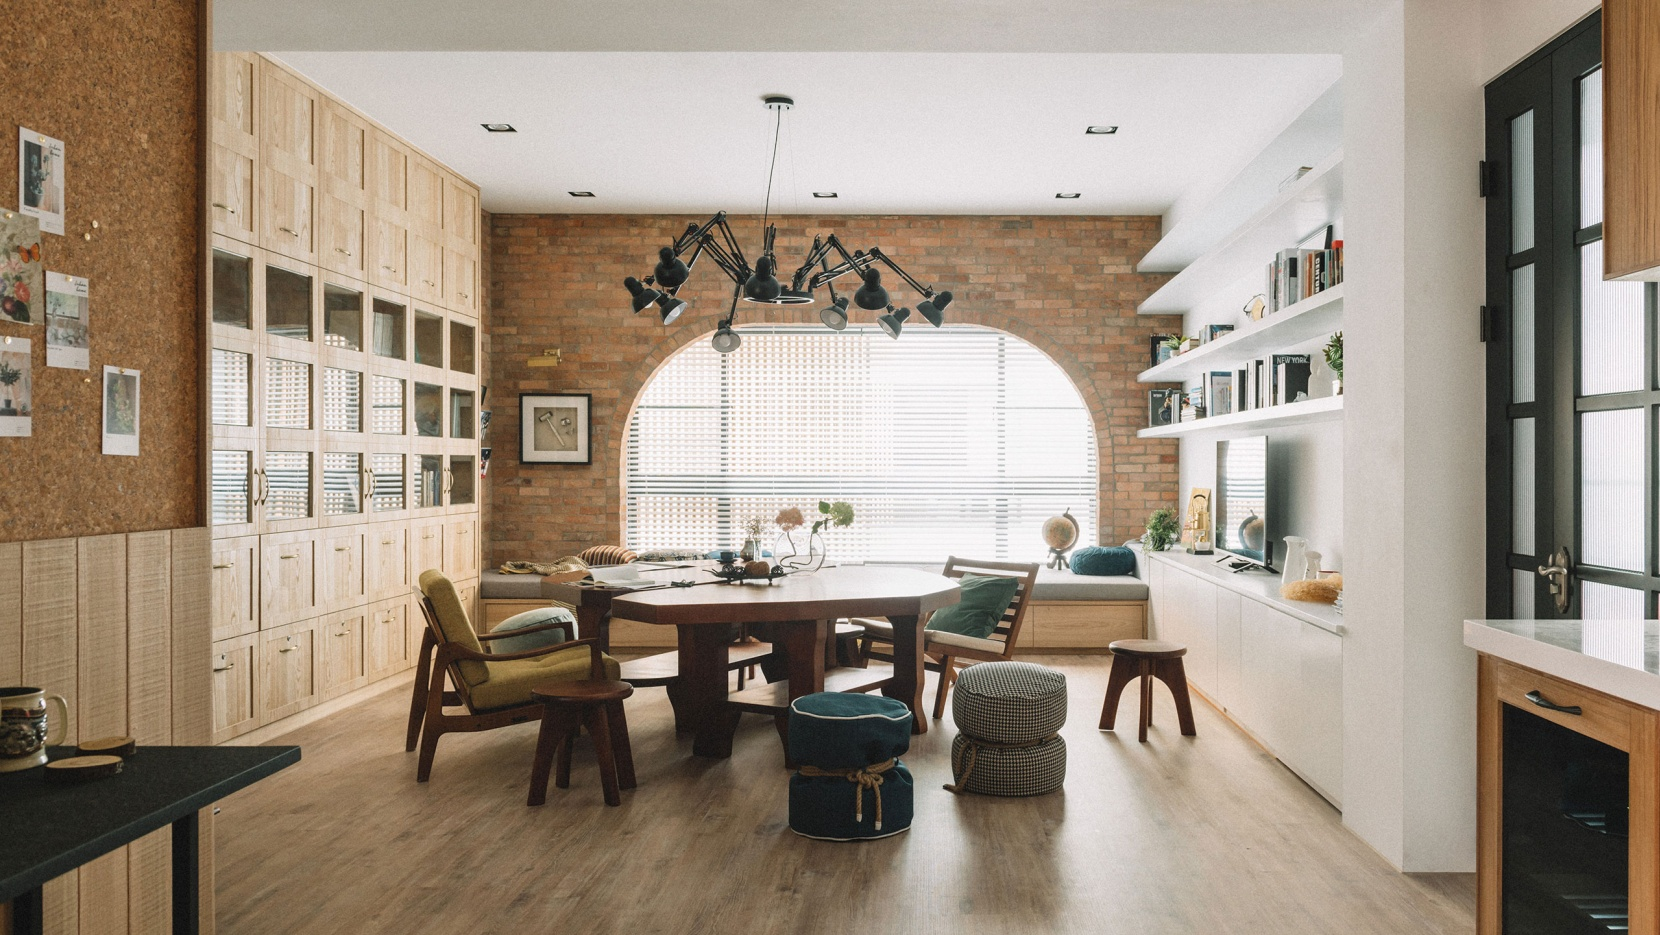 You Will Love the Vintage Industrial Stools in this This Taiwan Flat!